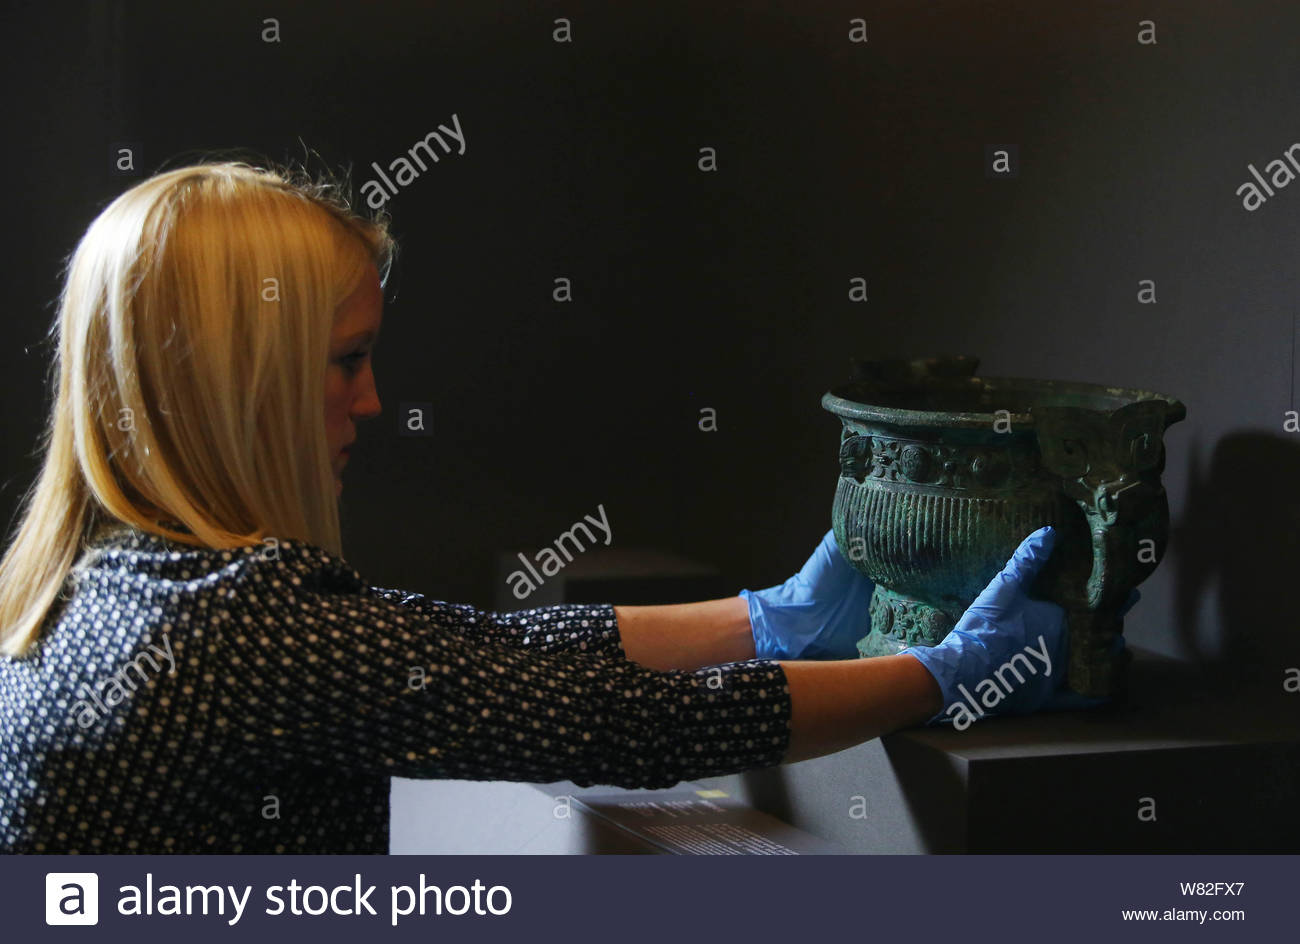 A foreign expert puts a bronze vessel of Western Zhou period (1046¨C771 BC) to be exhibited during an exhibition curated by the British Museum on disp Stock Photo